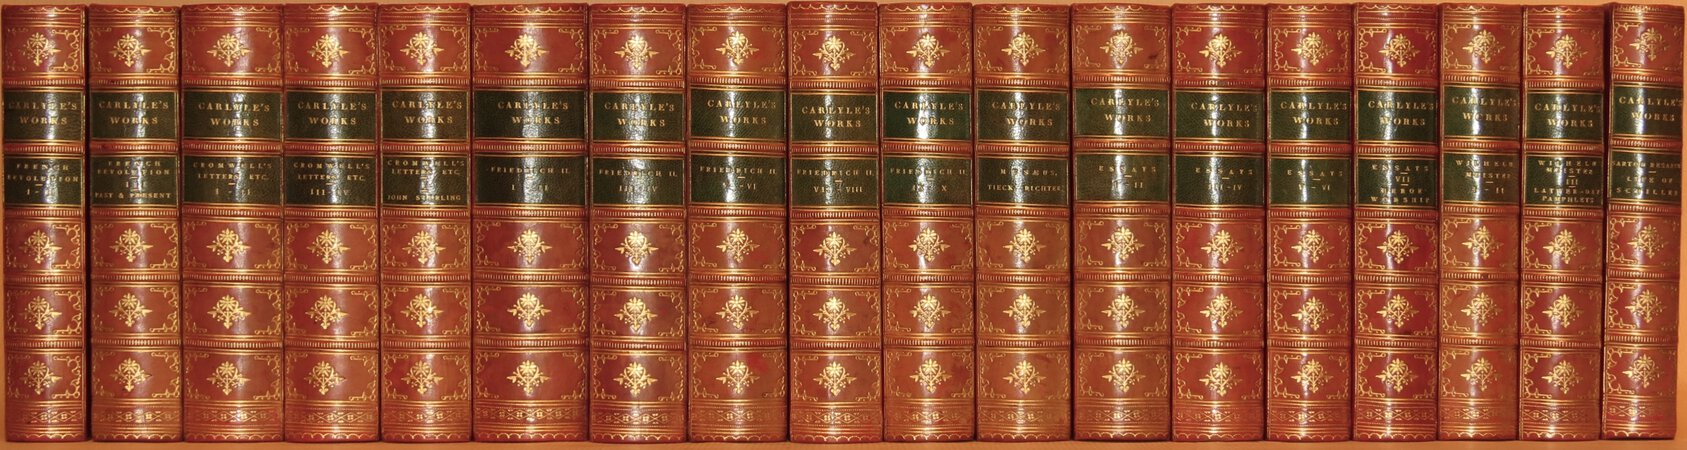 Works. (The French Revolution; Cromwell's Letters Etc.; Friedrich II; Essays; Wilhelm Meister; Musaeus, Tieck, Richter; Sartor Resartus, Life of Schiller). by CARLYLE, Thomas